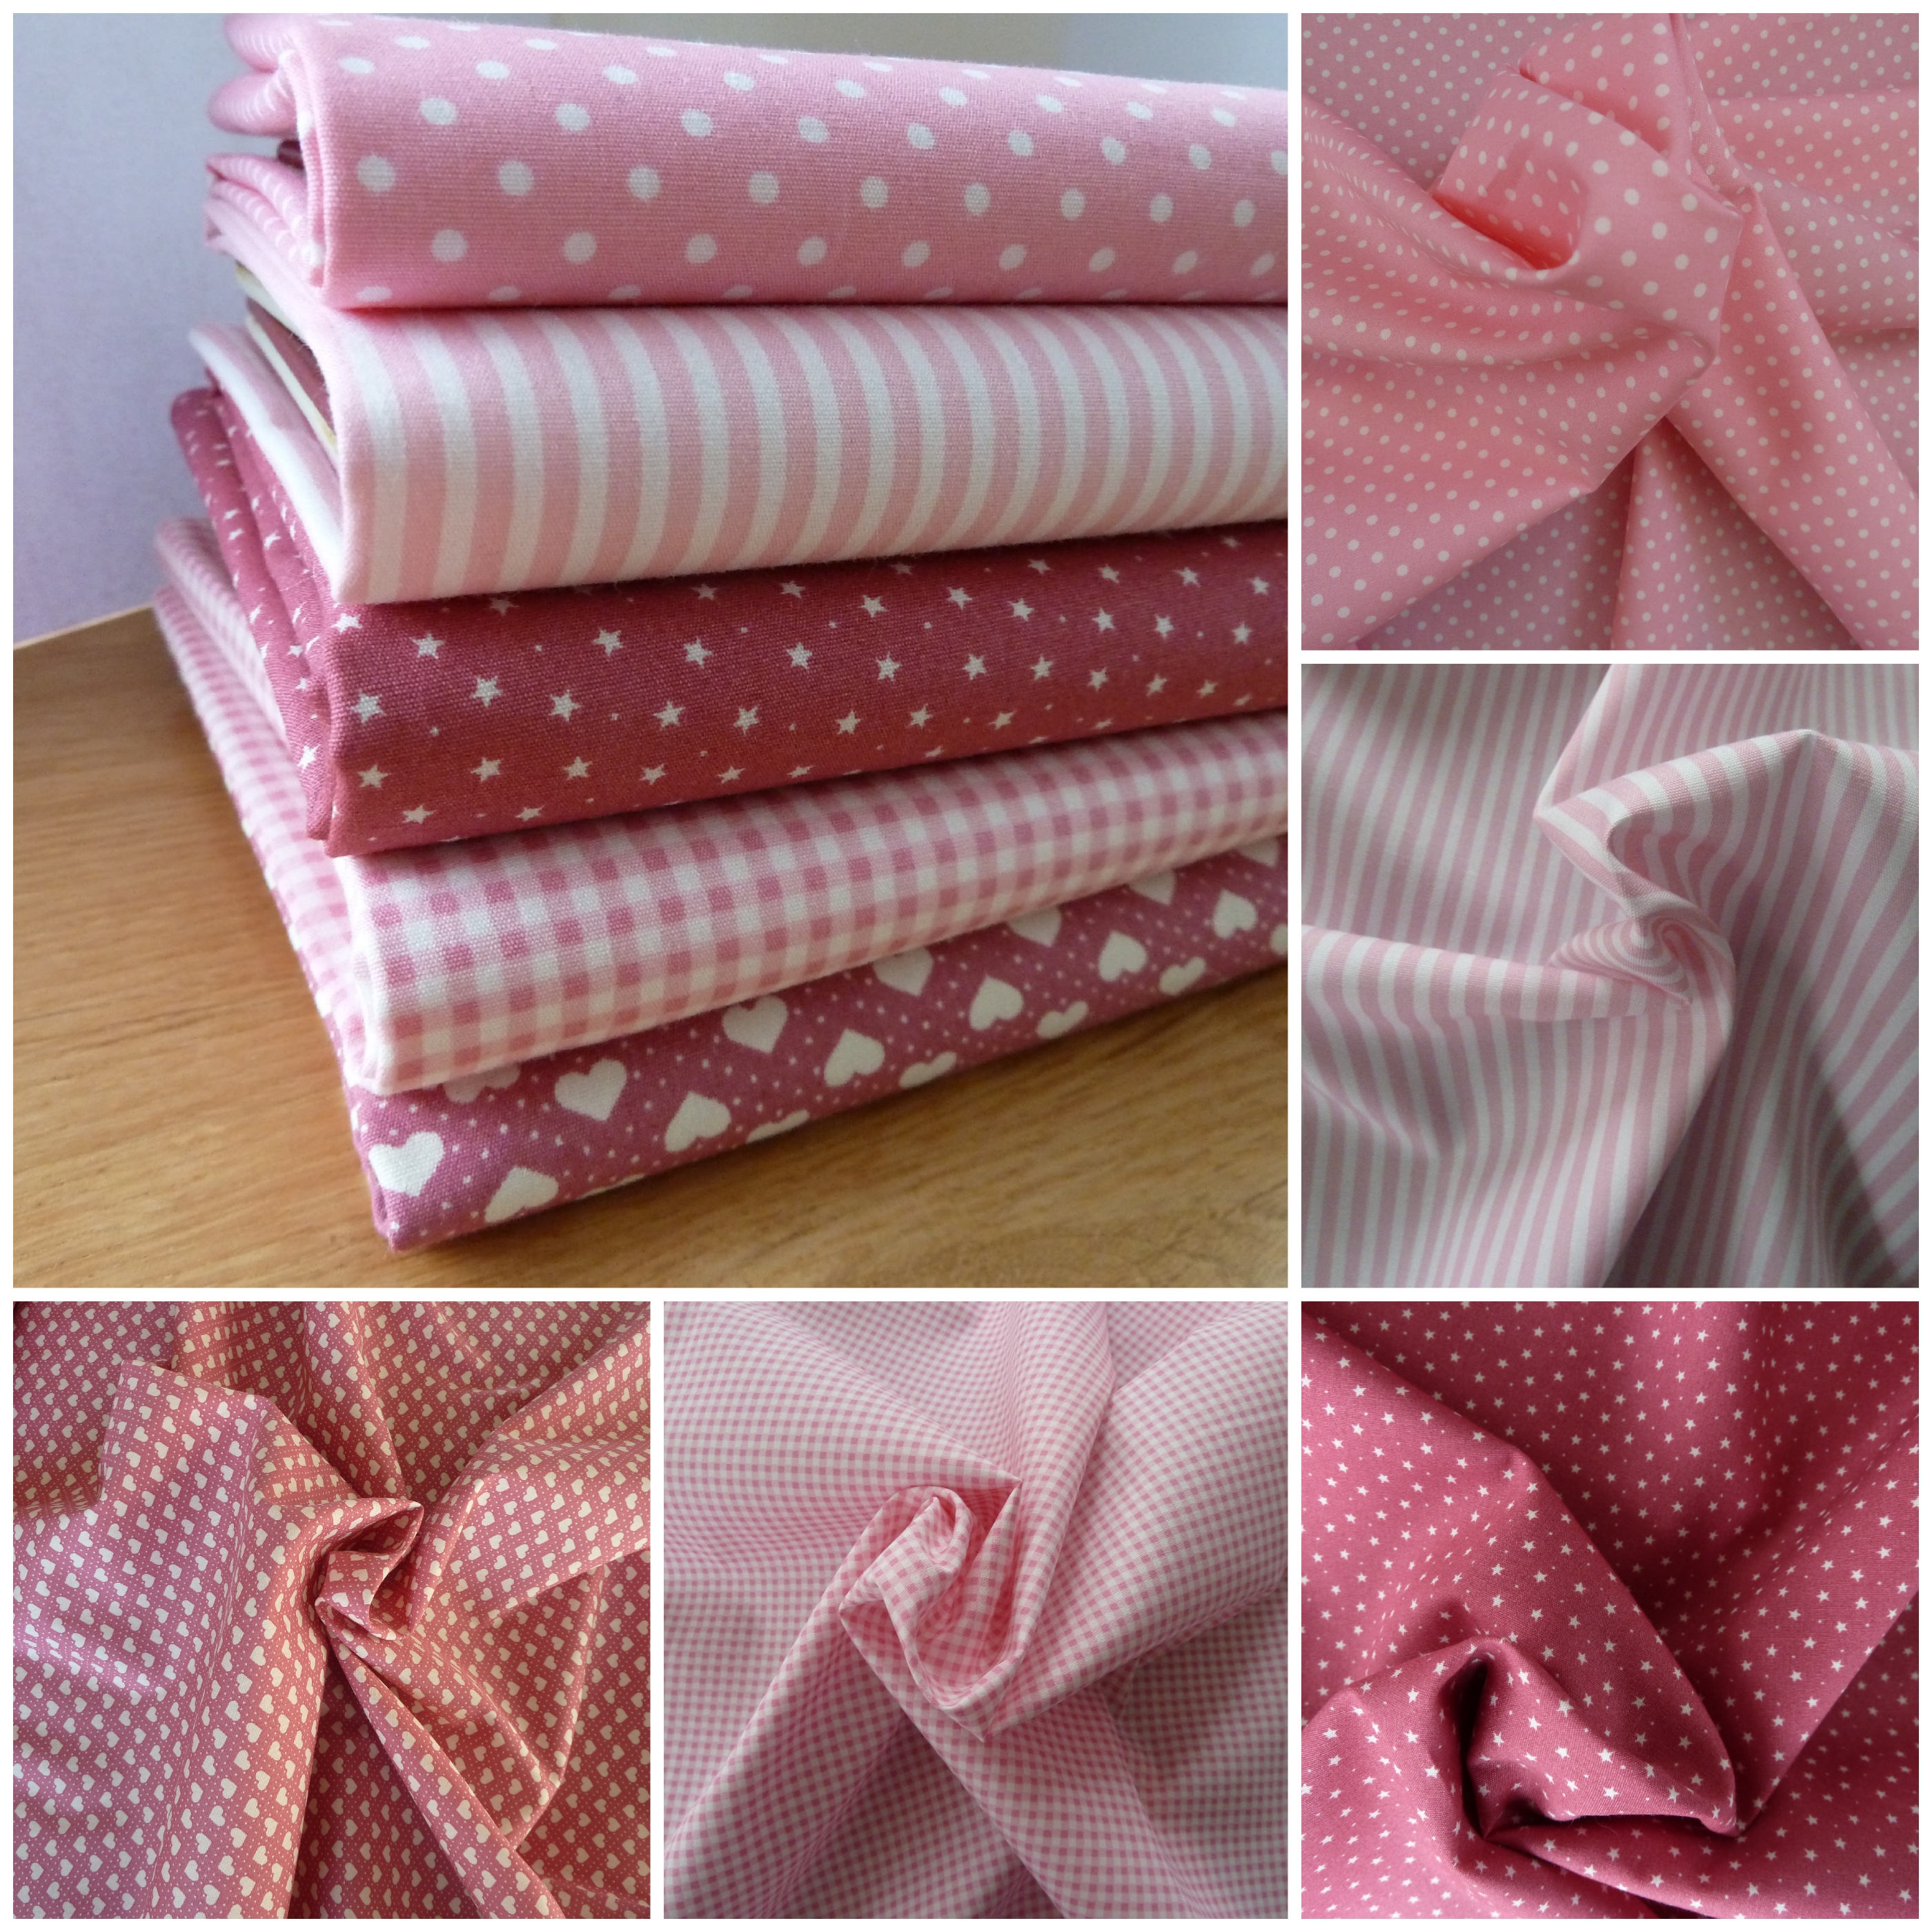 5 FAT QUARTER BUNDLE favourite florals dusky pinks /& ivory 100 /% cotton